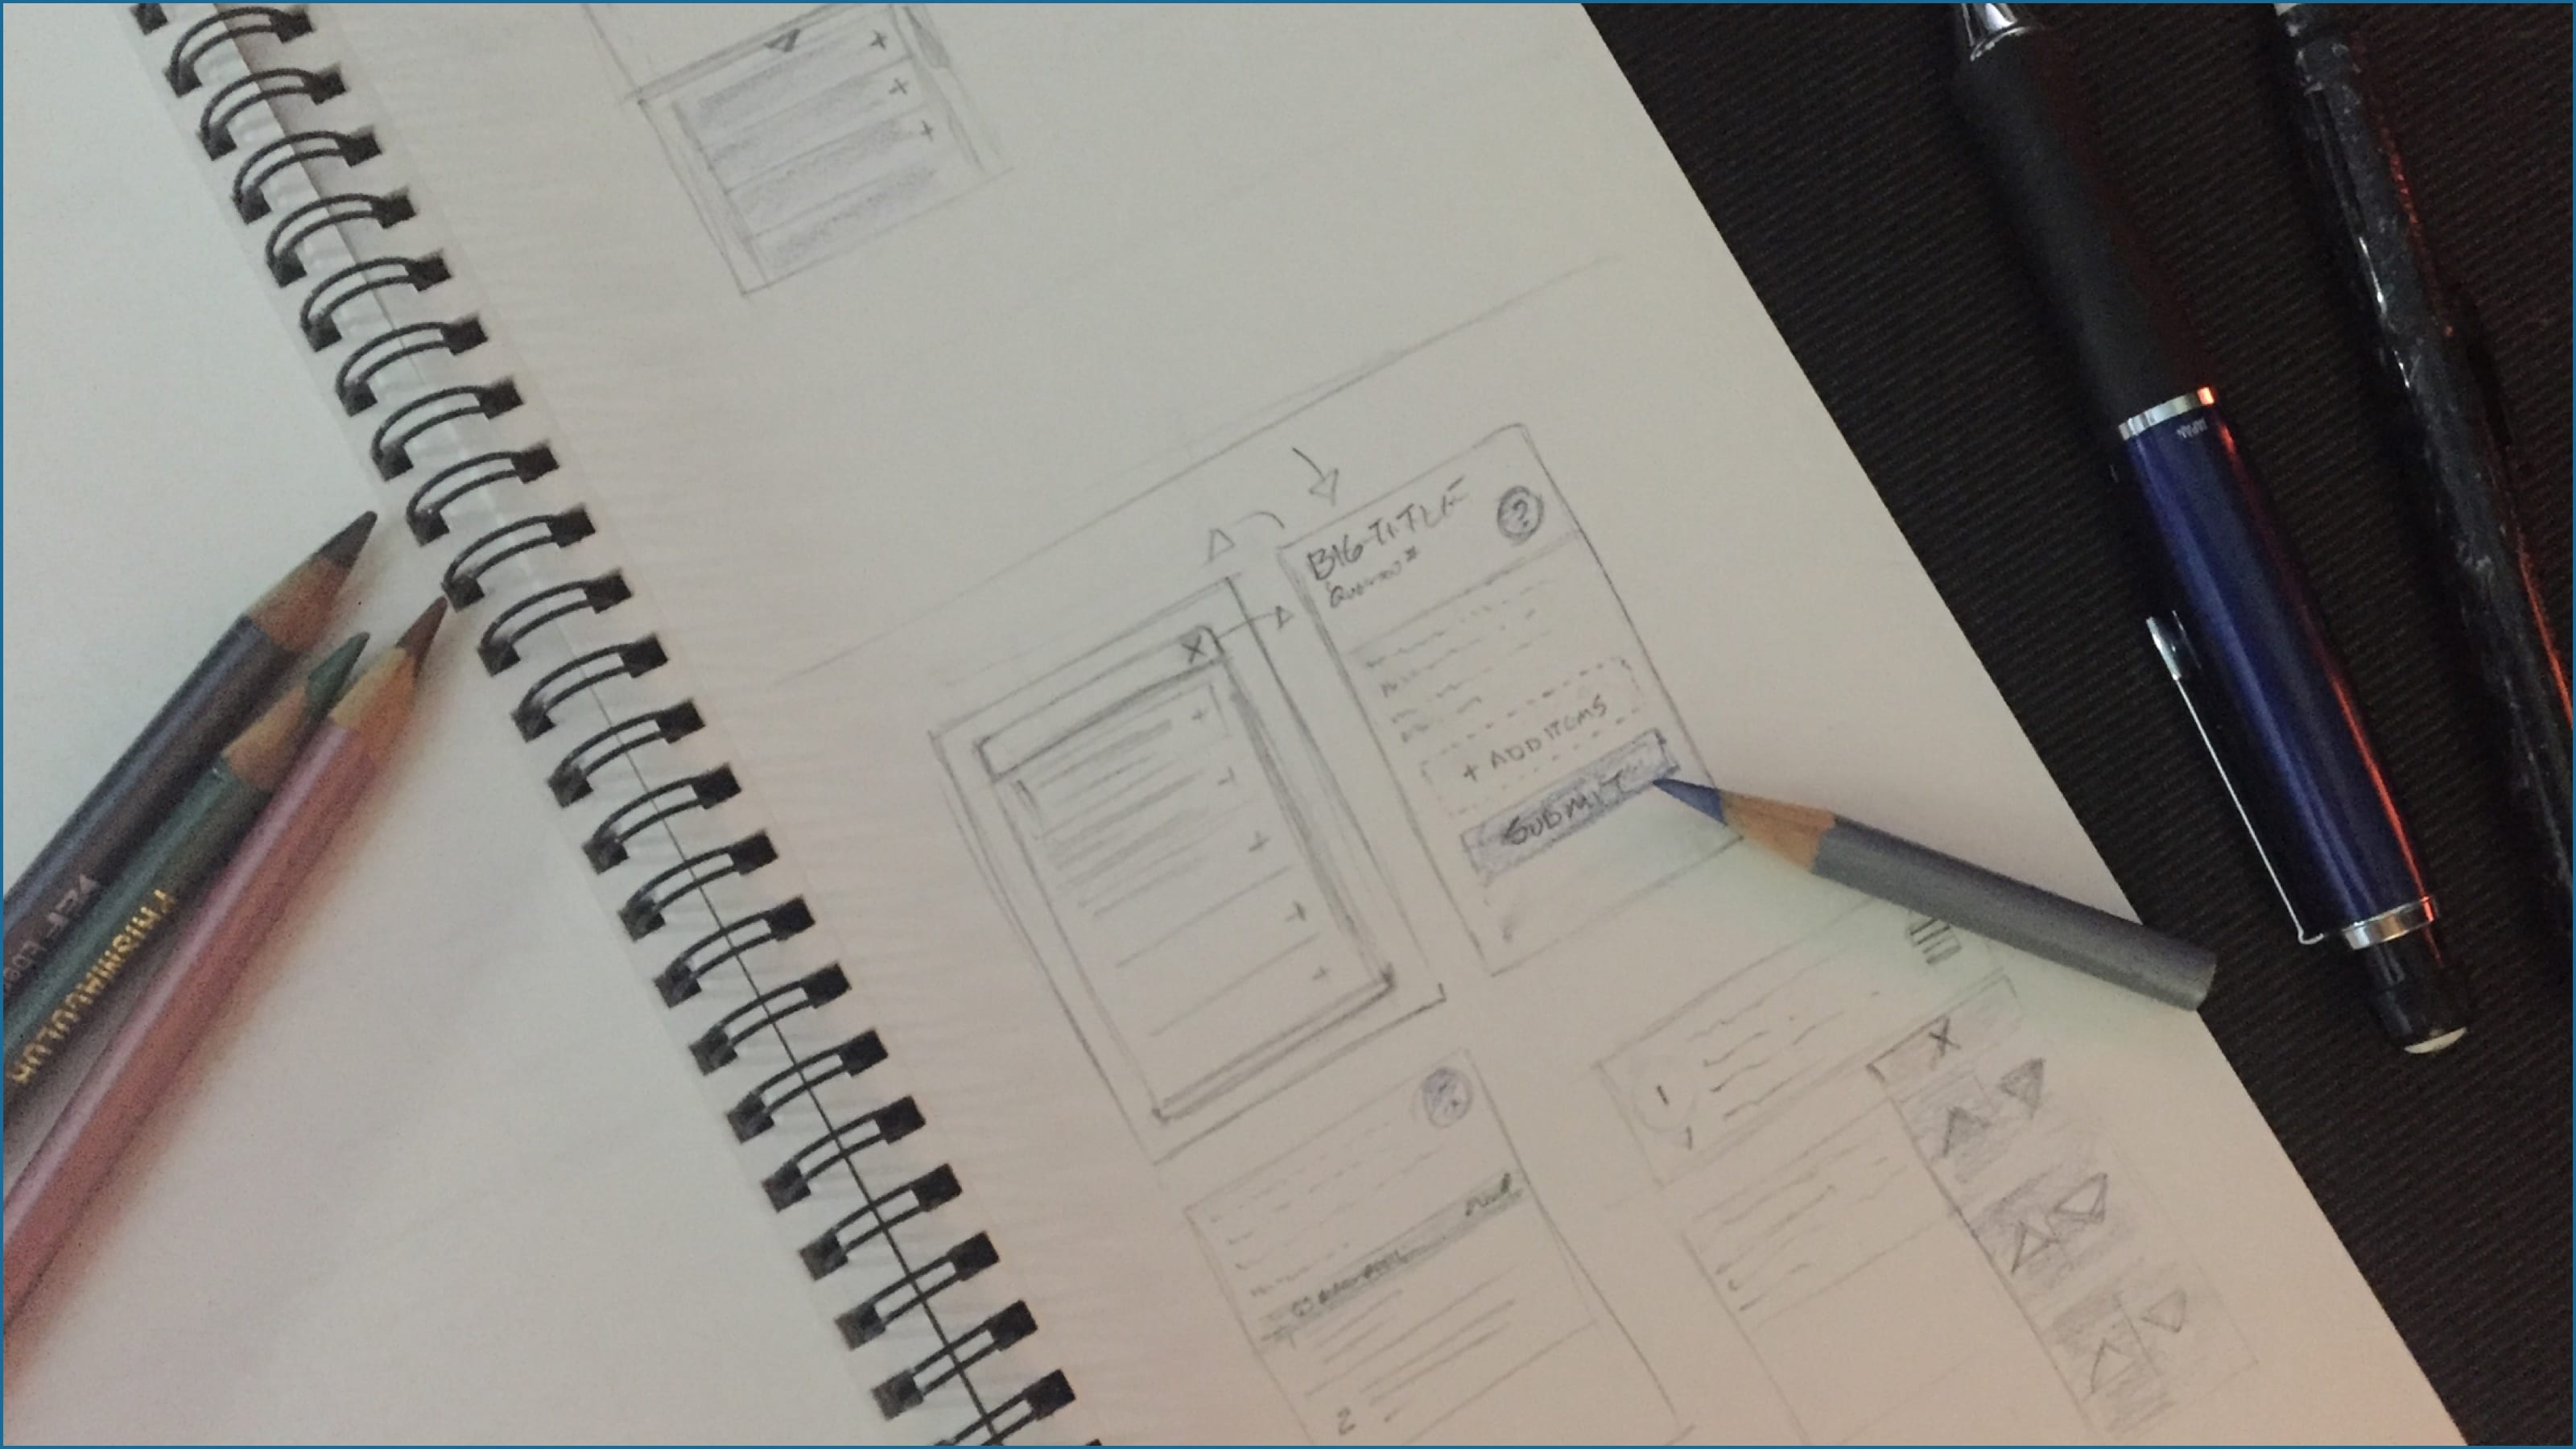 Photo of sketches from my sketchbook of ideas for the ranking sketch pattern for mobile.